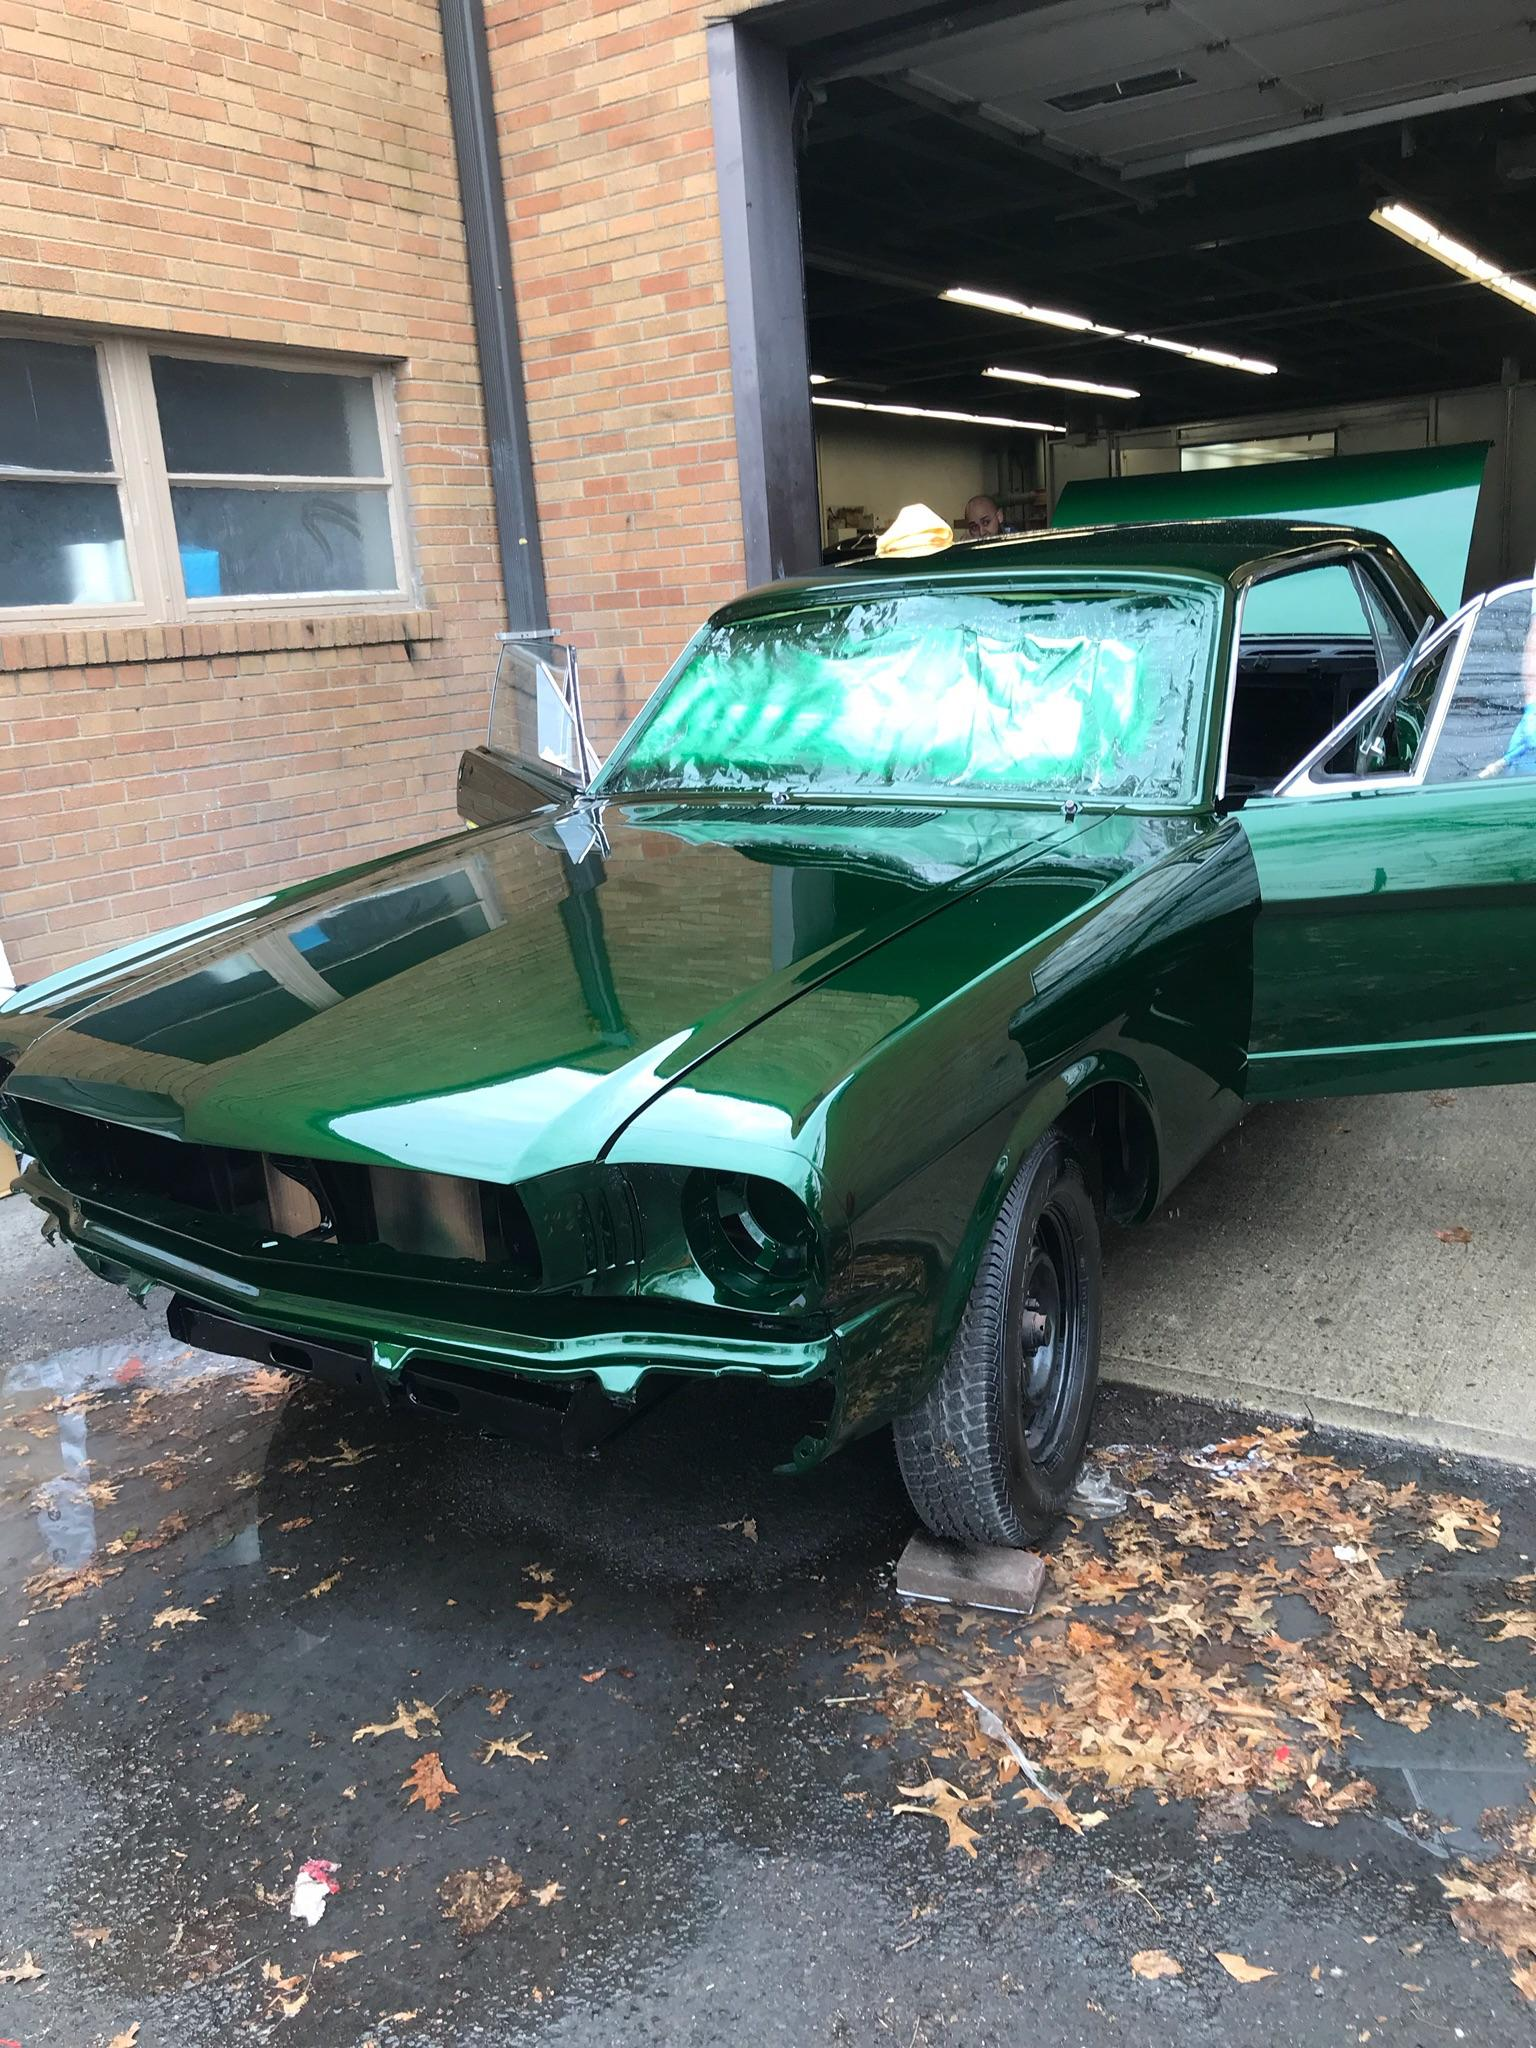 Mustang Paint Jobs : mustang, paint, Building, Mustang, Paint